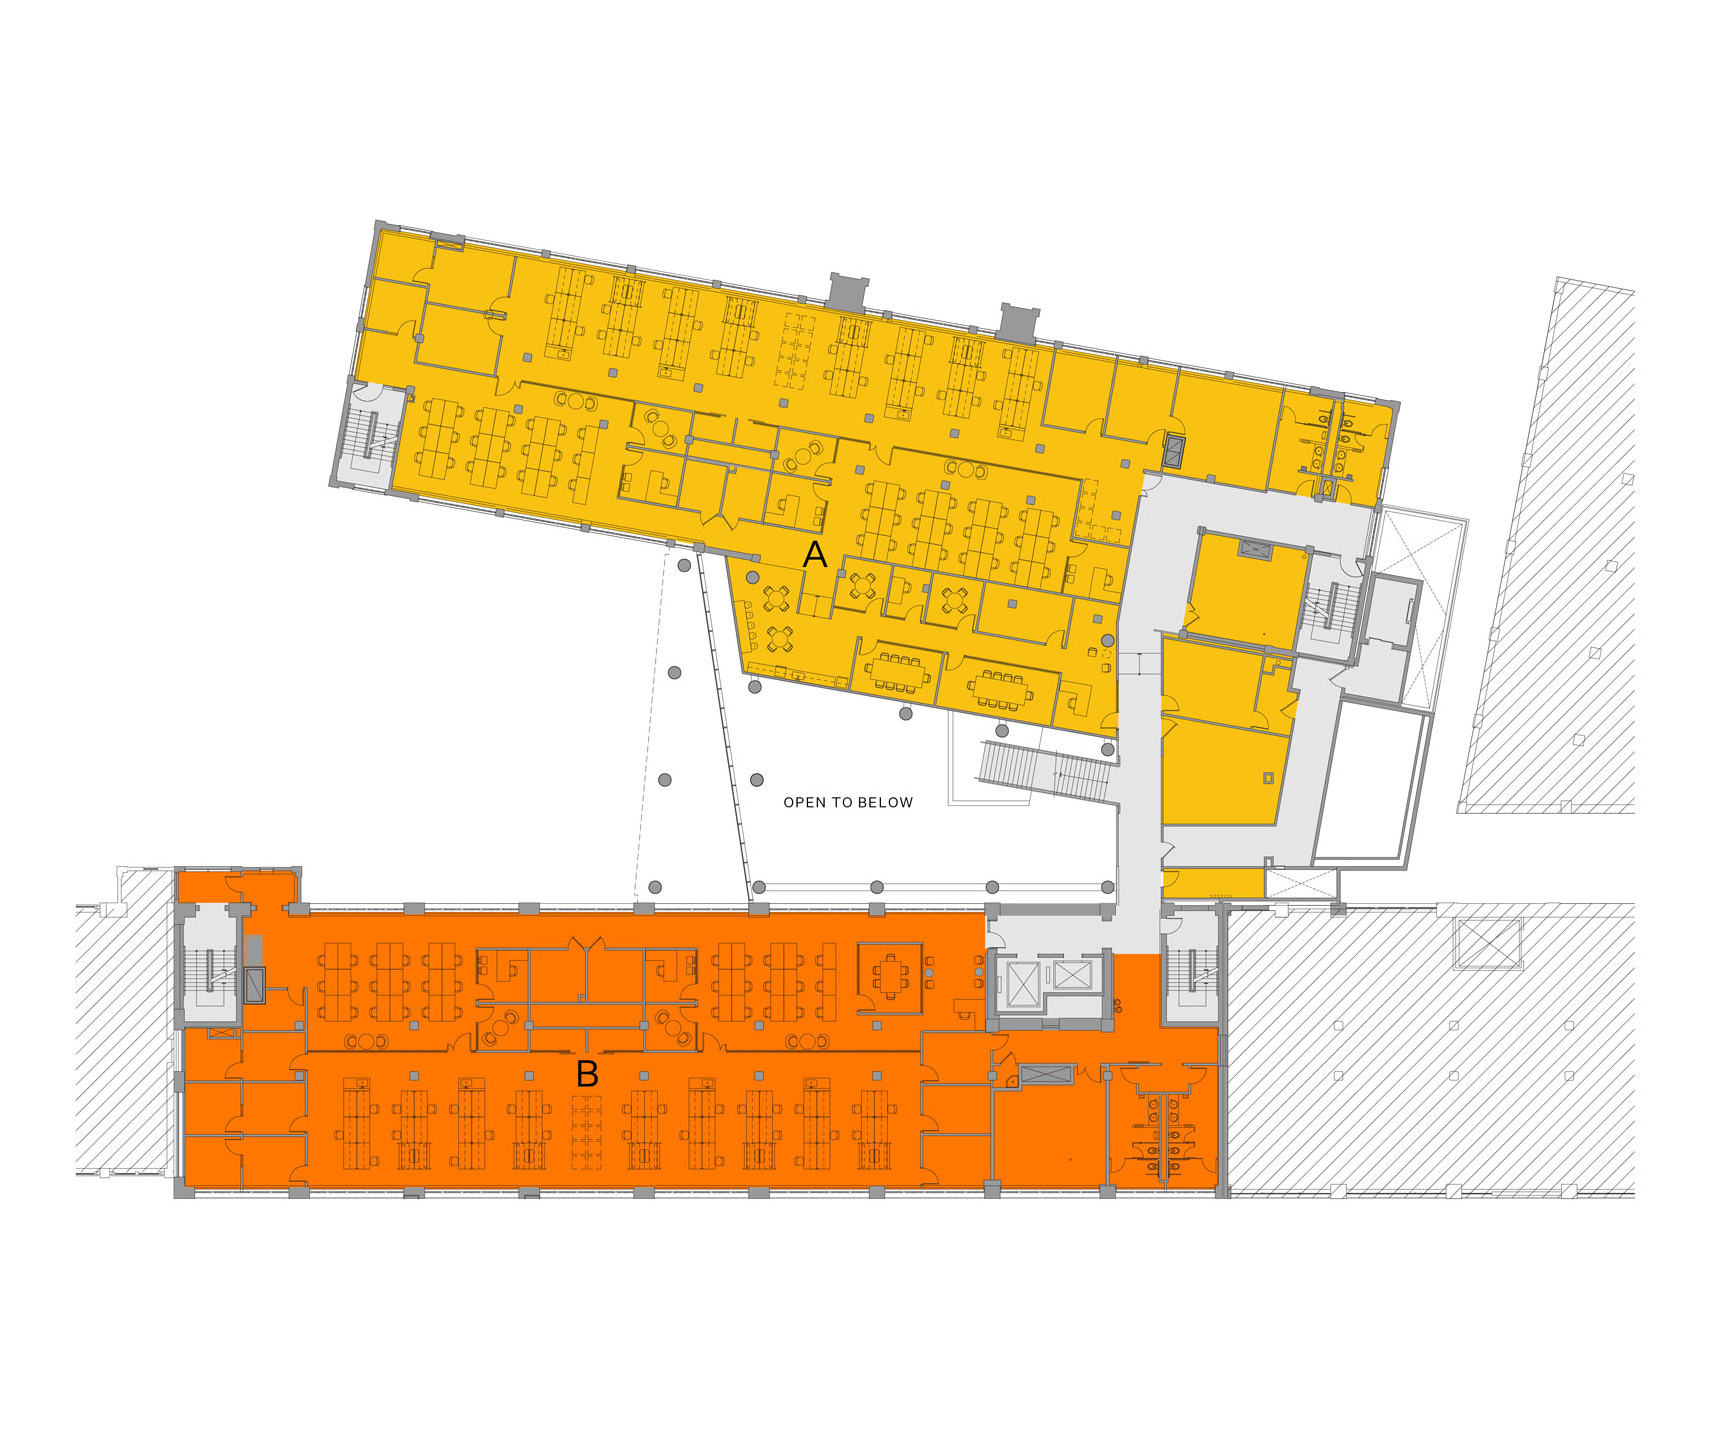 Blueprint layout of Winchester campus level 2